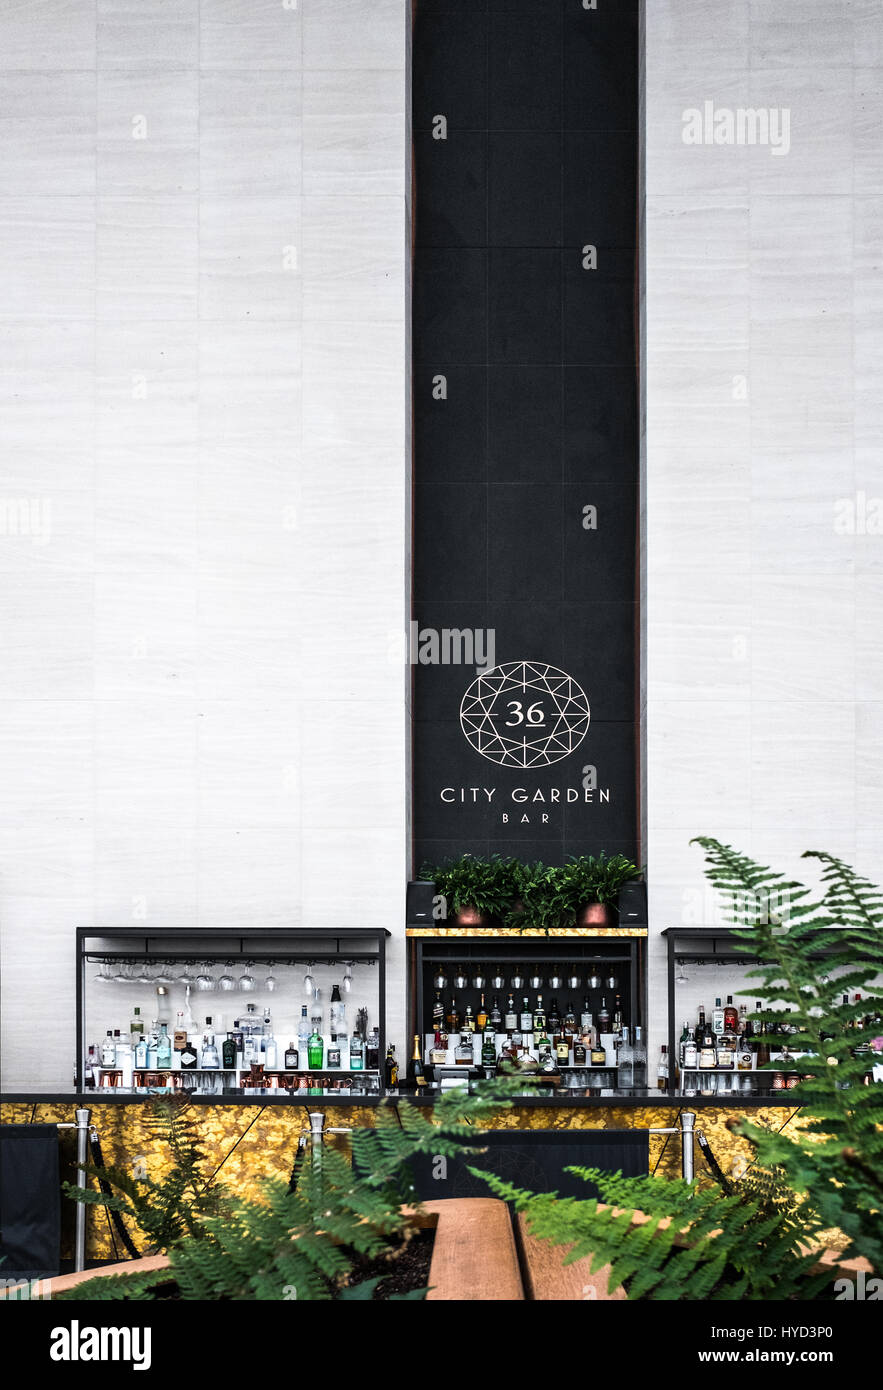 The '36 City Garden bar' of the Sky Gardens at the Walkie-Talkie building, 20 Fenchurch Street, City of - Stock Image